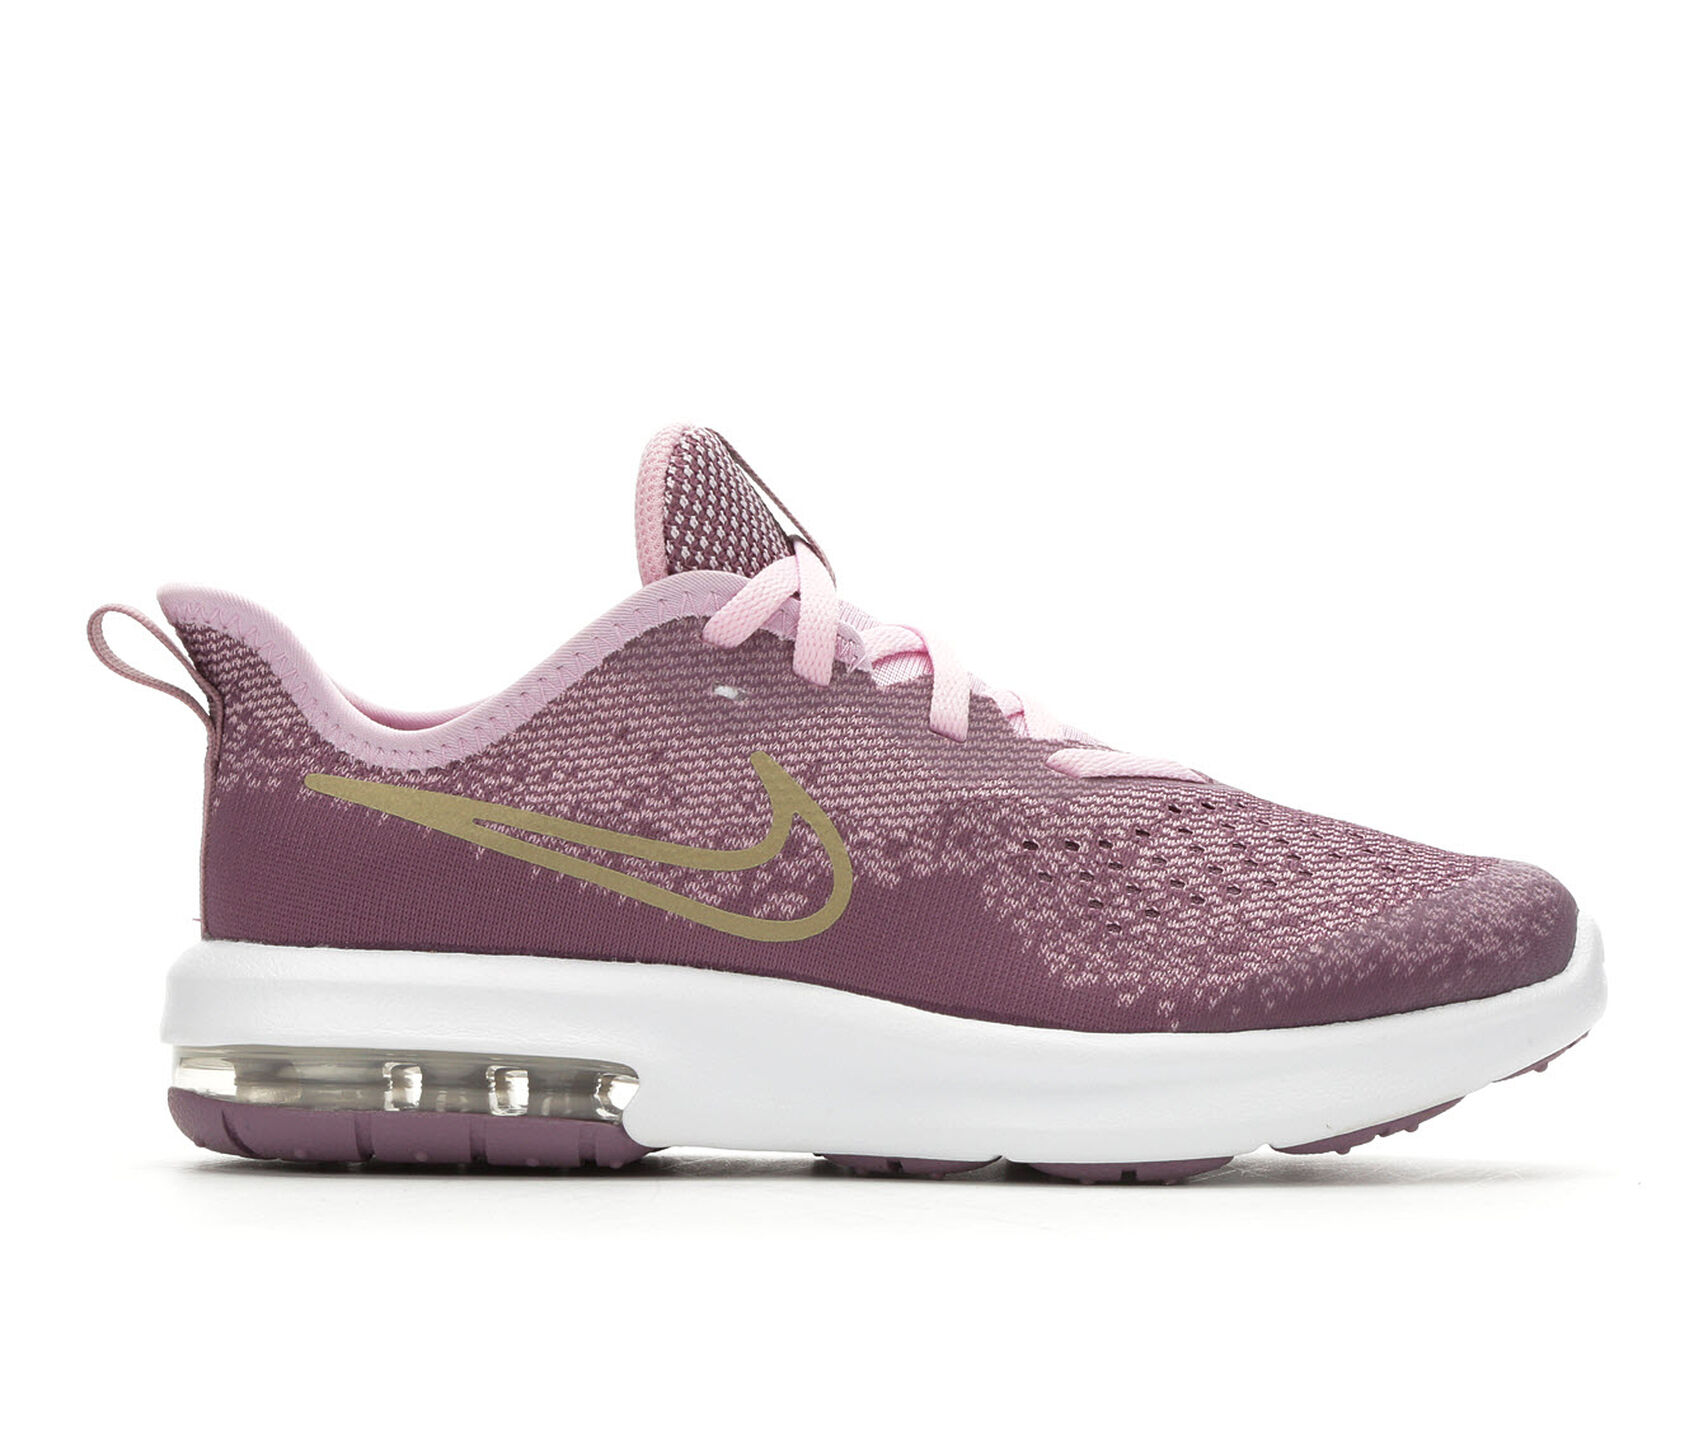 43895f2b58 Girls' Nike Little Kid Air Max Sequent 4 Running Shoes | Shoe Carnival